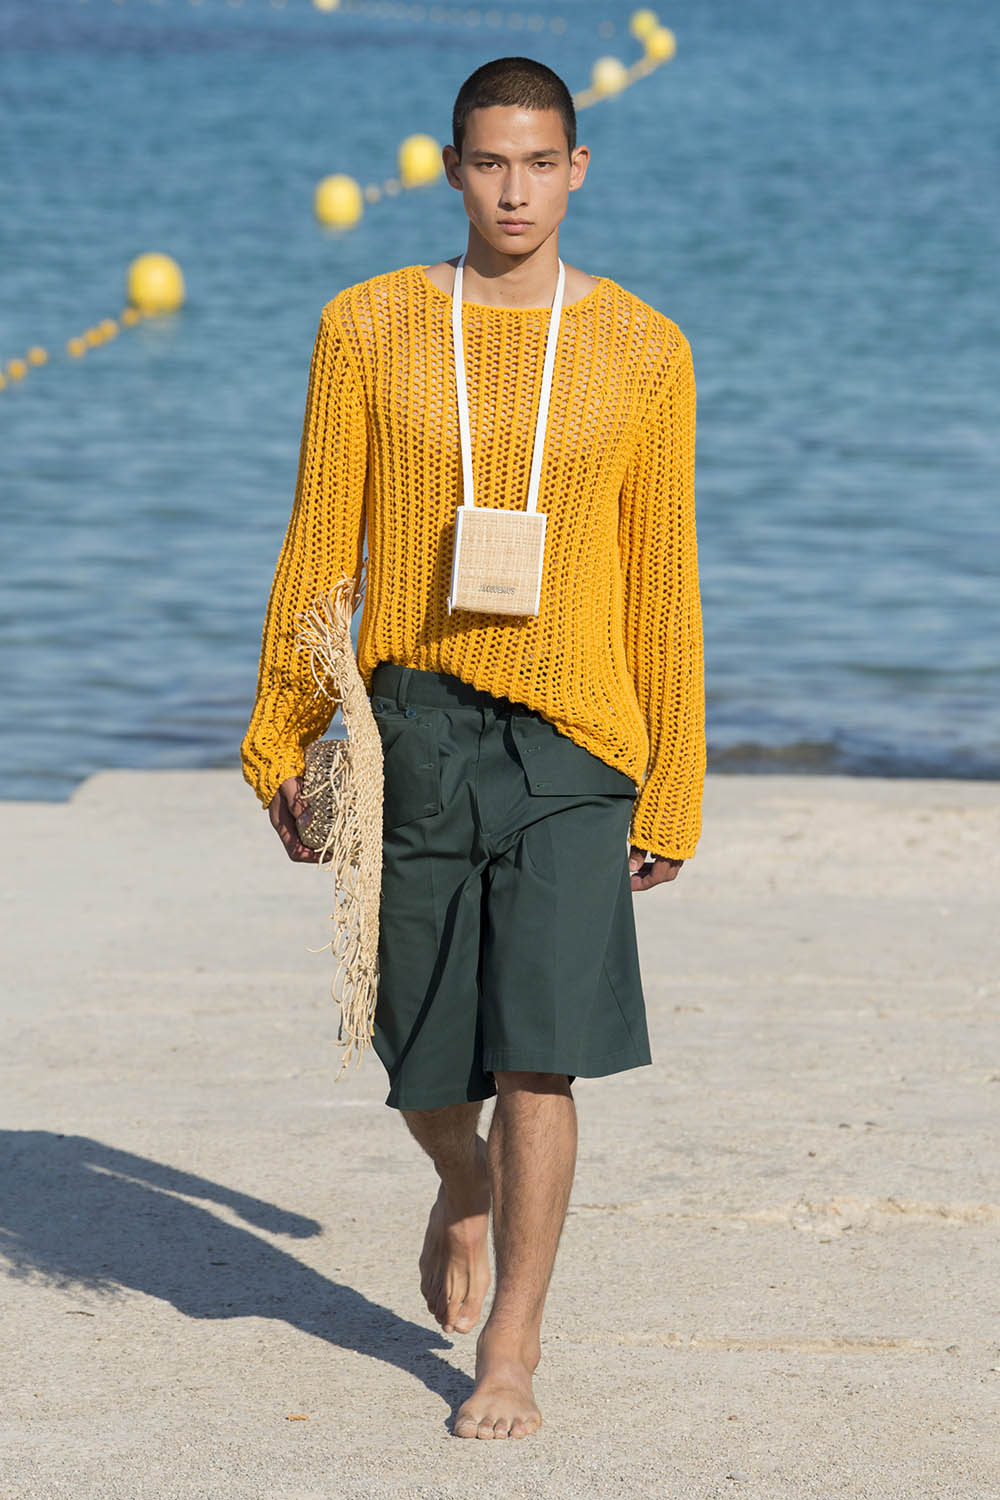 Jacquemus Paris Fashion Week Men's SS19 - Sagaboi - Look 10